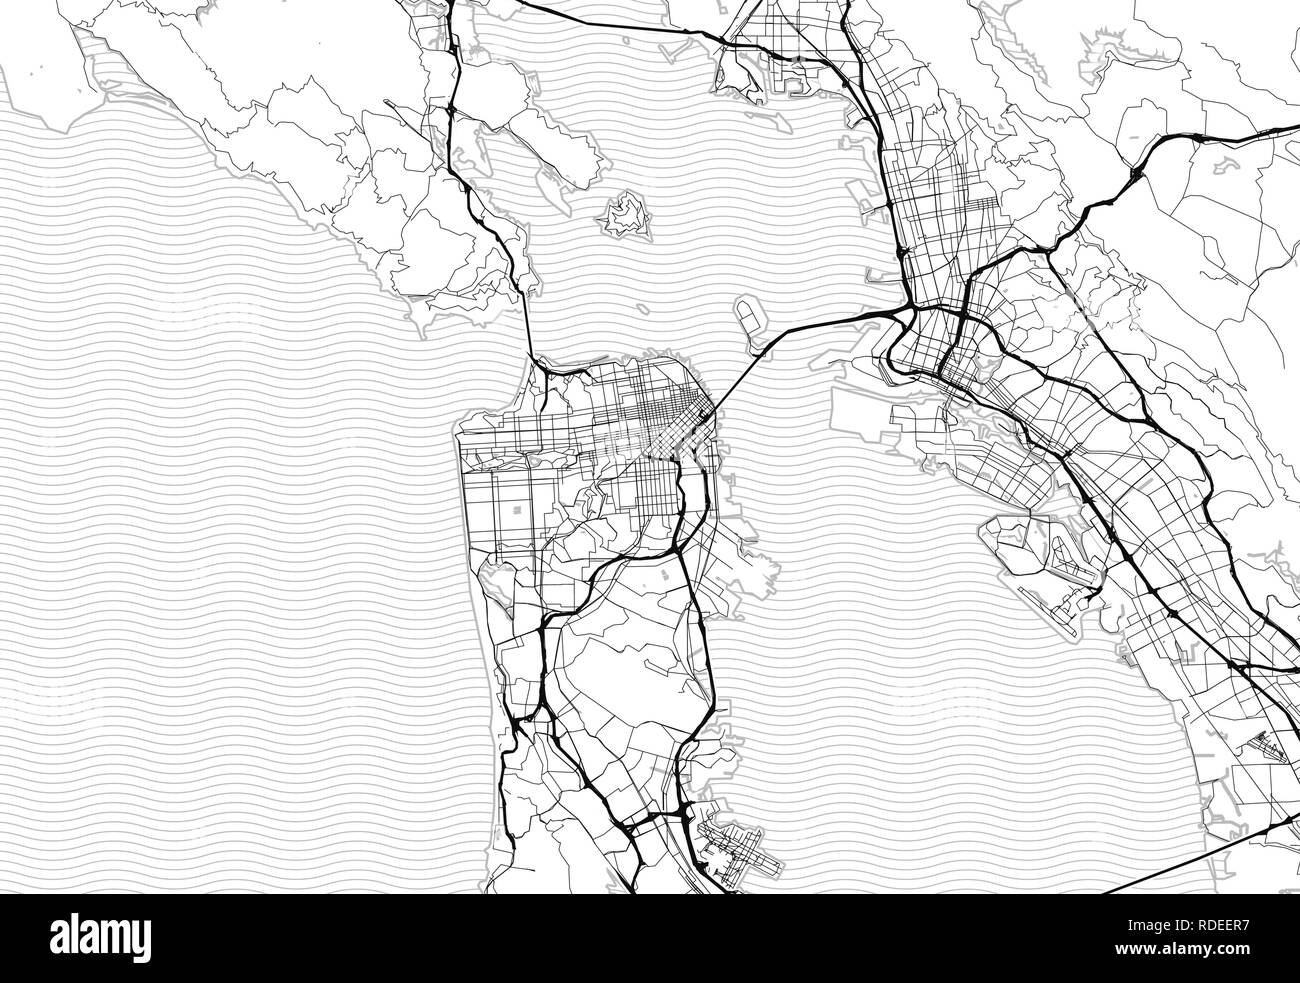 Area map of San Francisco, United States. This artmap of San ... United States Area Map on ghana area map, plains area map, us and canada time zone map, call area map, german area map, seattle university area map, mountaineer country area map, madagascar area map, sand hill area map, southwest area map, uzbekistan area map, panhandle area map, rhode island area map, international area map, west tennessee area map, india area map, north america area map, qatar area map, sonoran desert area map, kurdistan area map,